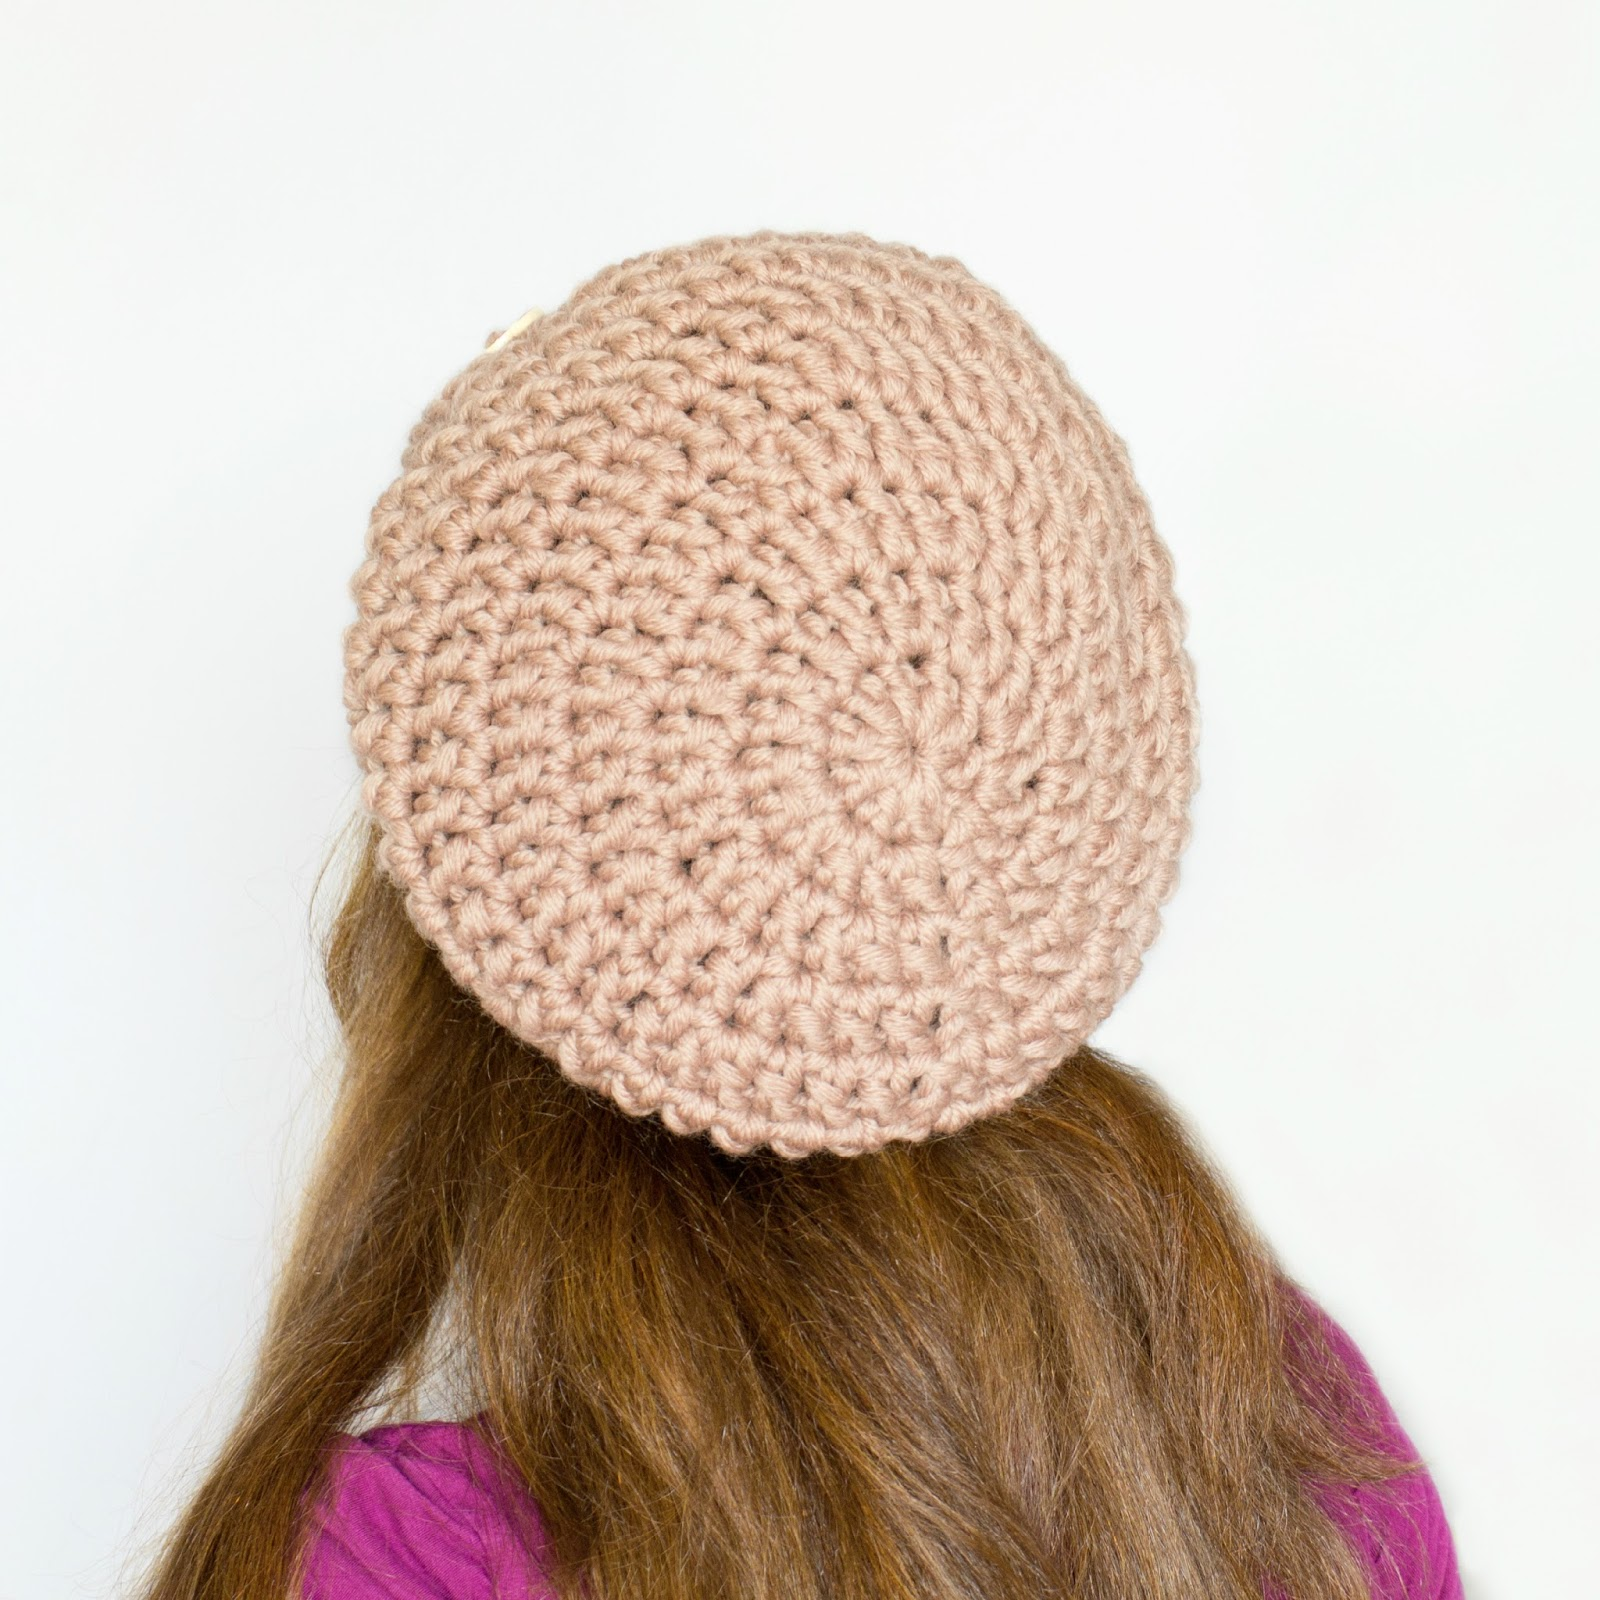 Crochet Patterns Slouchy Beanie : ... Honey Craft, Crochet, Create: Chunky Slouchy Beanie Crochet Pattern